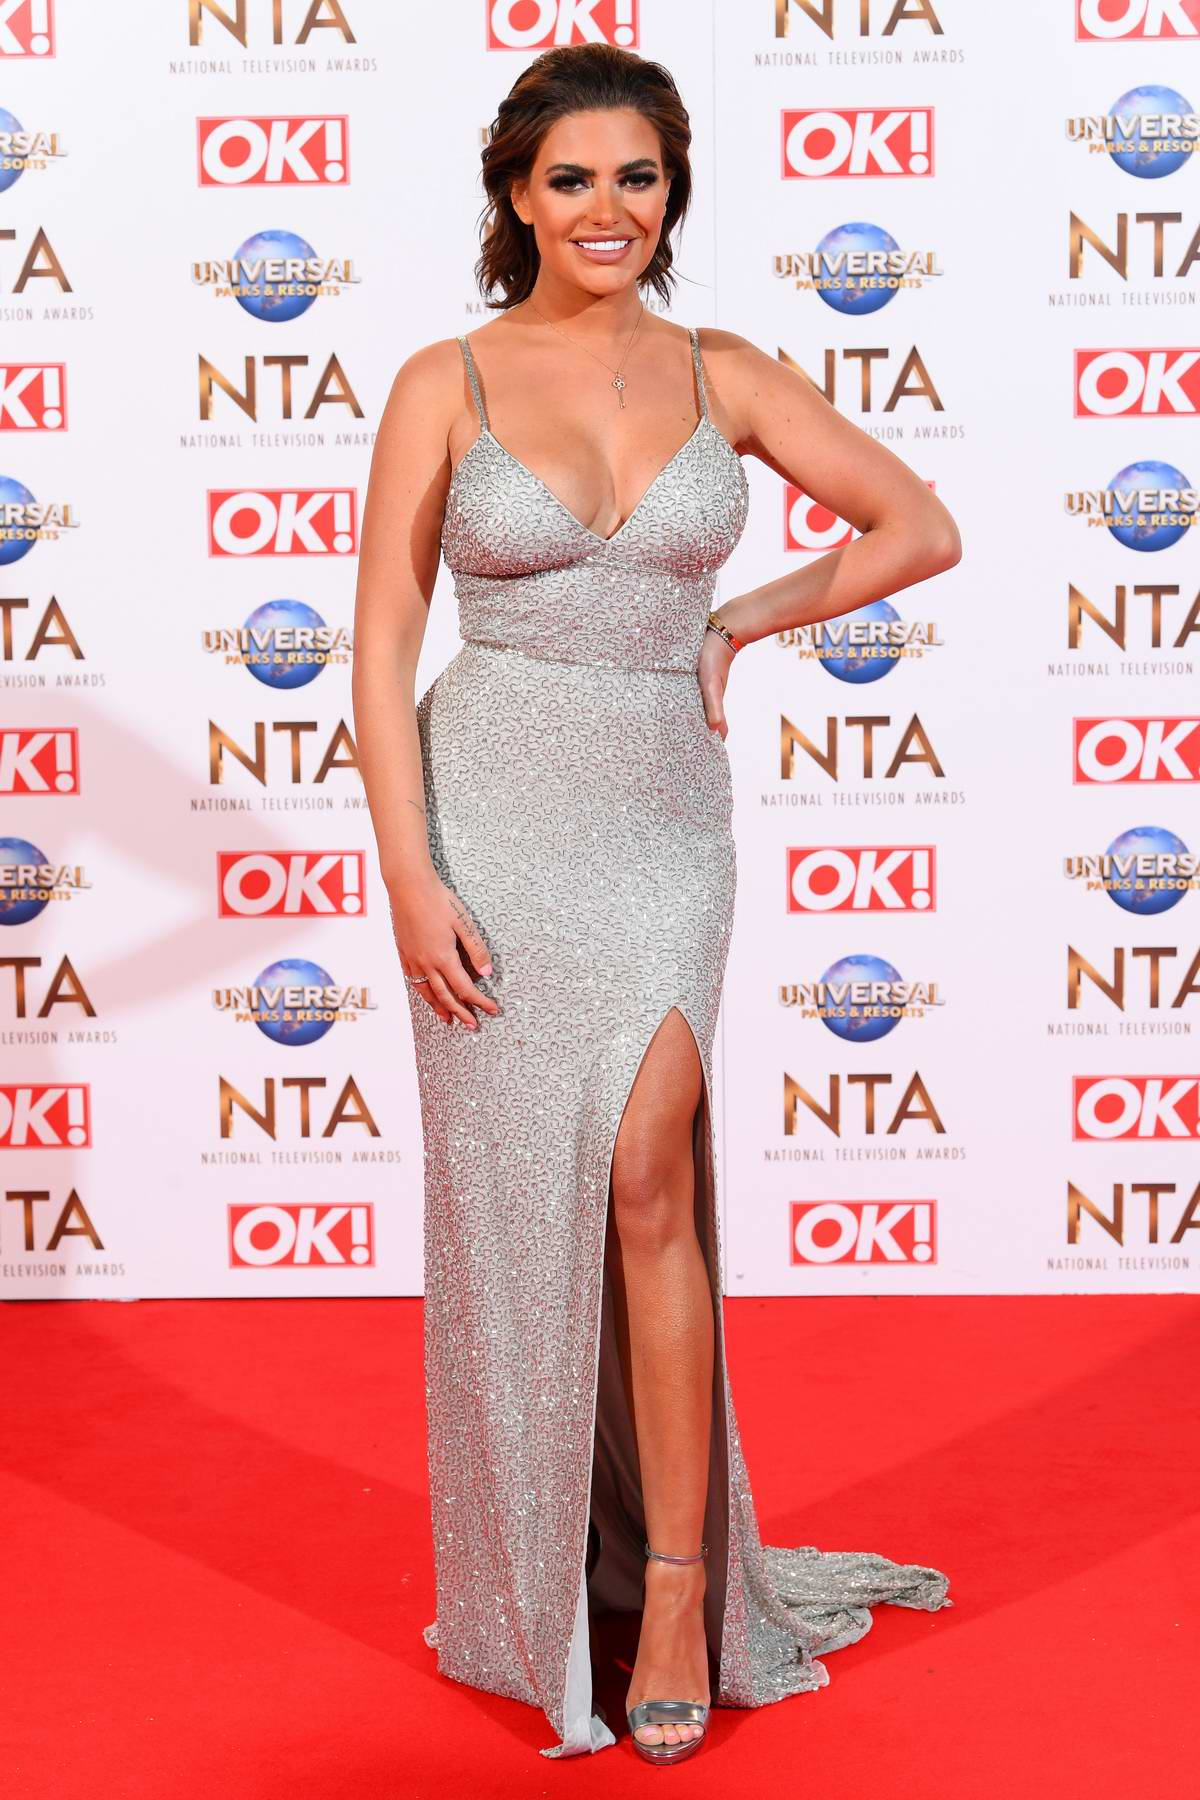 Megan Barton-Hanson attends the National Television Awards 2020 at The O2 Arena in London, UK